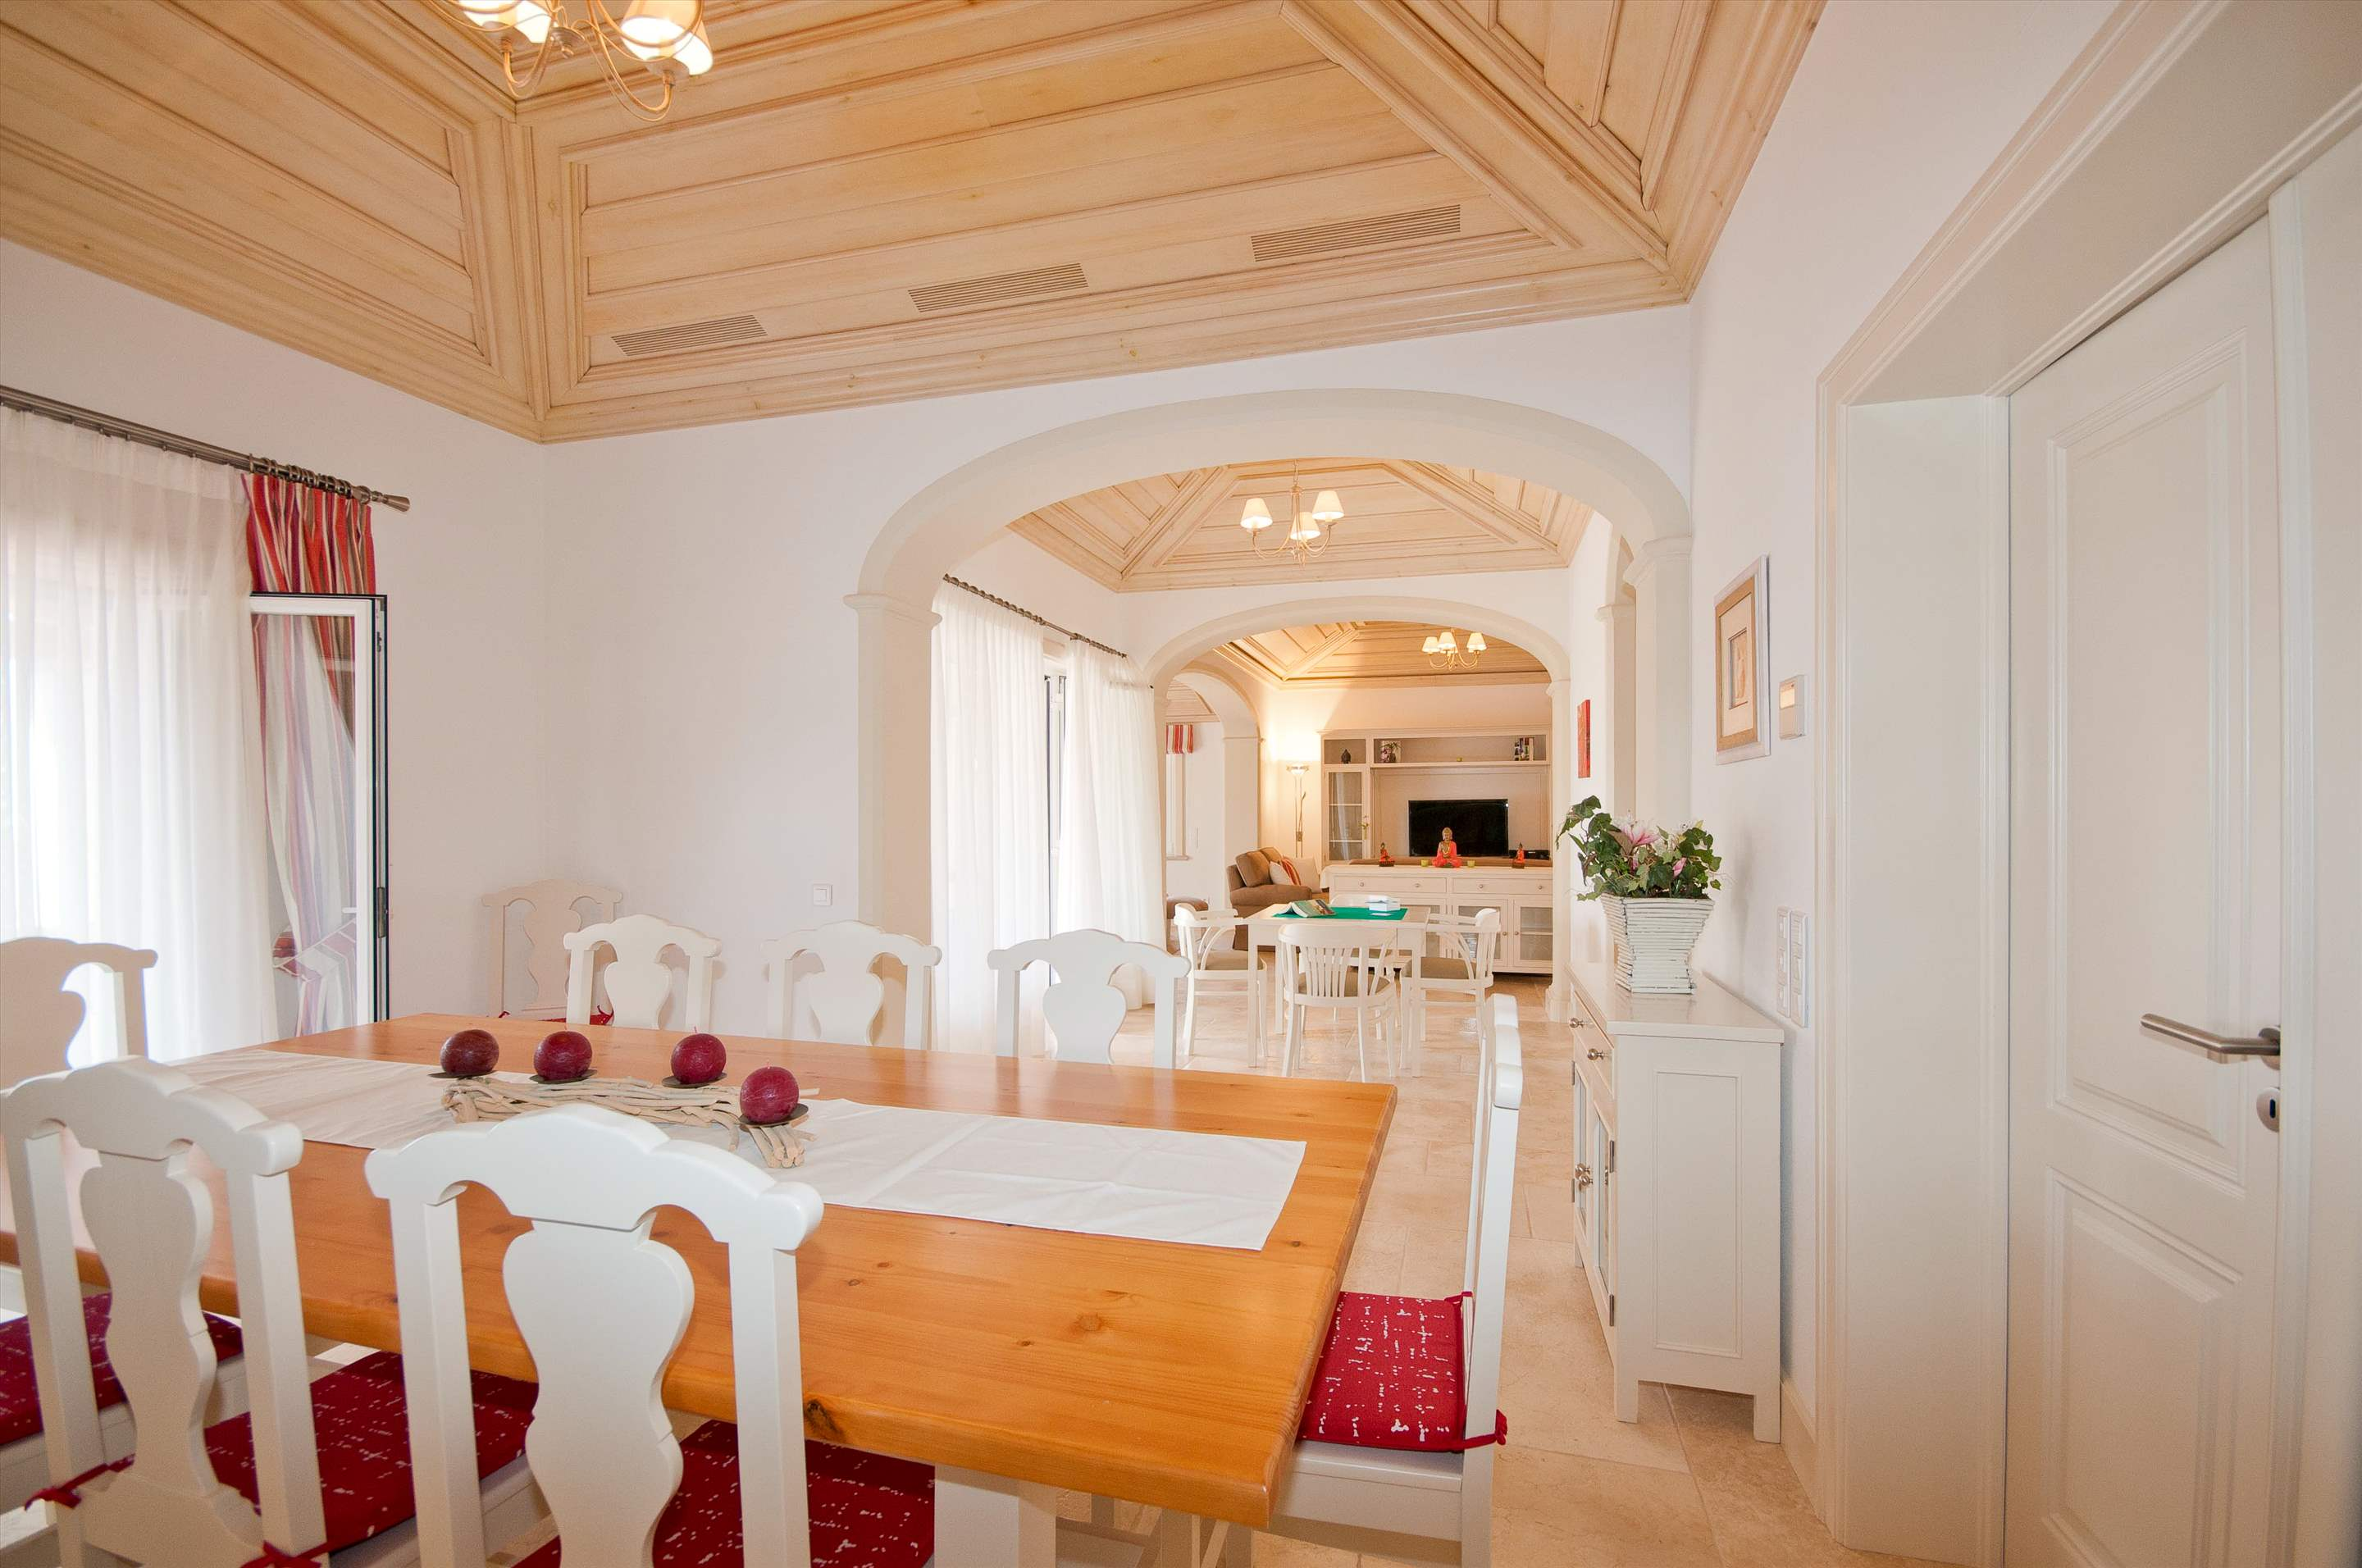 Villa Mirante 1, Five Bedroom Rate, 5 bedroom villa in Albufeira Area, Algarve Photo #5